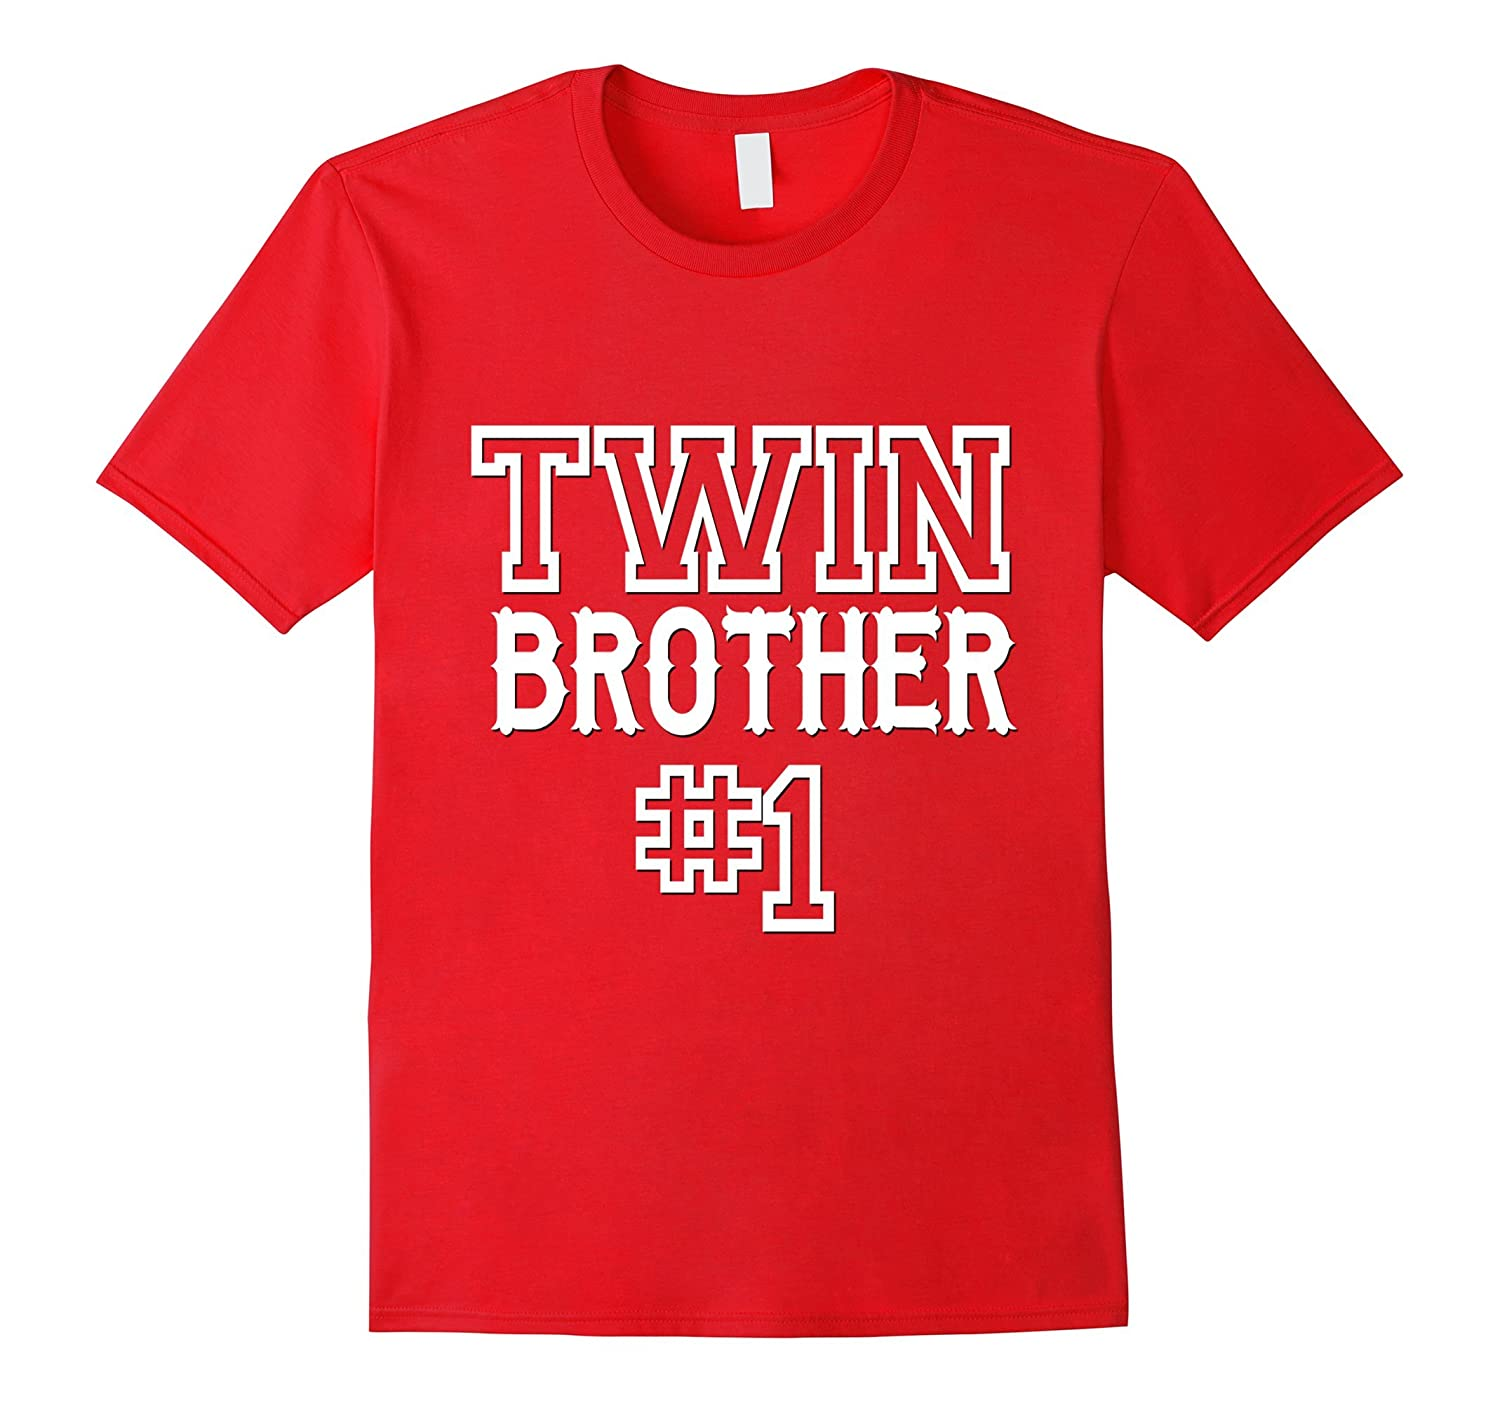 Twin Brother 1 Shirt Matching Family Kids Son Boys Gift-CD